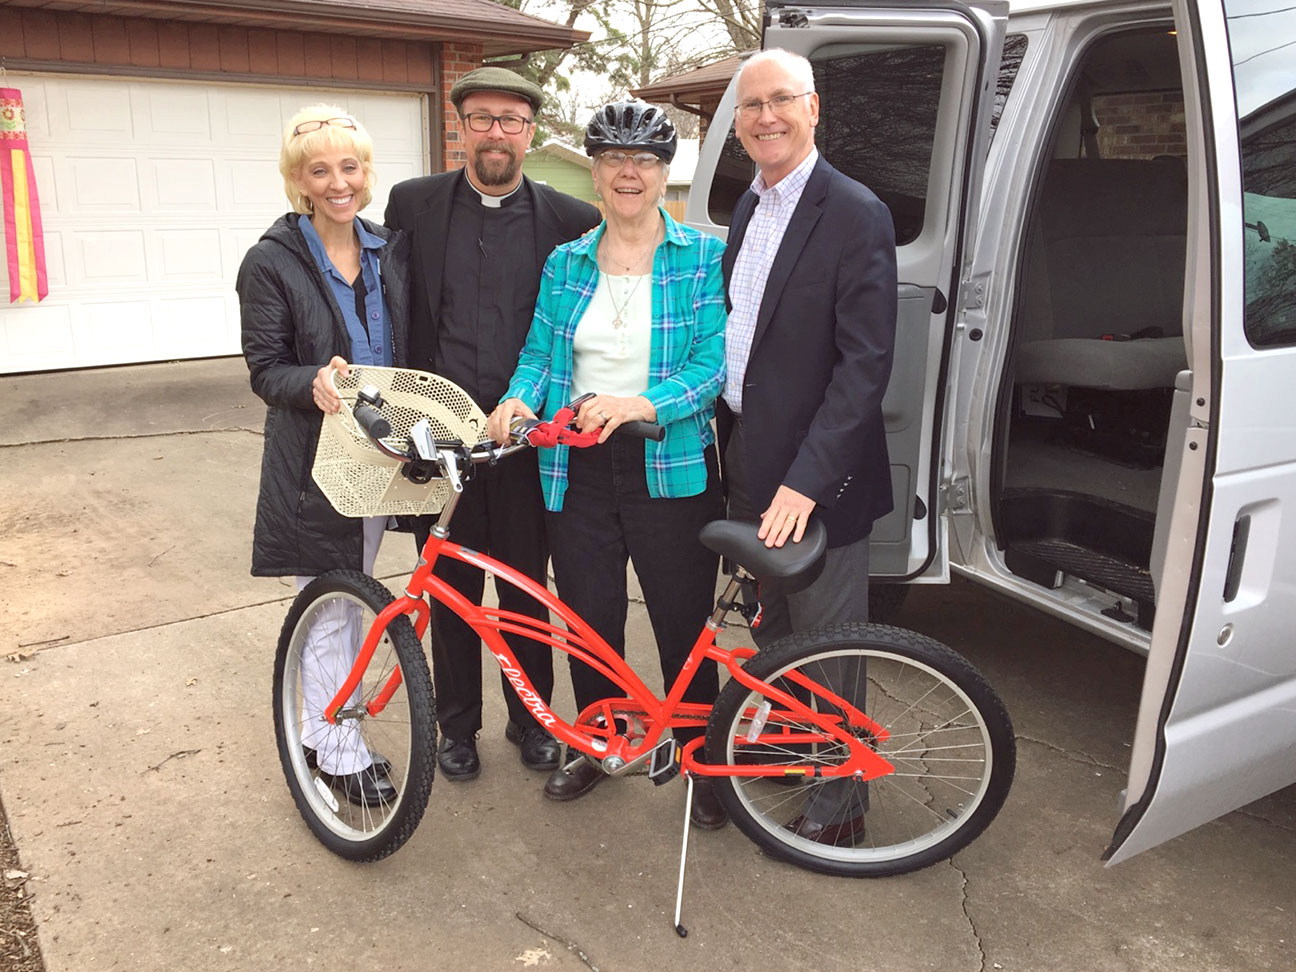 "NEW 'CRUISER' FOR SISTER—Sister Frances Wessel, SSND, recently had her bicycle stolen while she was on a ministry visit at Mercy Hospital in Springfield. Her 'parish family' of St. Joseph the Worker in Ozark held a 'fill-the-boot' fundraiser after Masses the weekend of Jan. 14-15 to assist Sr. Wessel with her lack of transportation. The parish raised enough money to buy her a brand-new, ""sacred-heart-red""colored 'cruiser,' complete with basket, bell, lights, helmet, and a bike-lock. The bicycle was delivered on Jan. 18 and blessed by Fr. Scott Sunnenberg, pastor. Pictured were Carol Craig, St. Joseph the Worker Parish secretary, Fr. Sunnenberg, Sr. Wessel, and Bill Hennessey, Parish Council Member and Vice President of Mission Services at Mercy Springfield. This is a perfect example of the 'love of one's neighbor' Msgr. Pope speaks about in this article. (Photo by J.B. Kelly/The Mirror)"